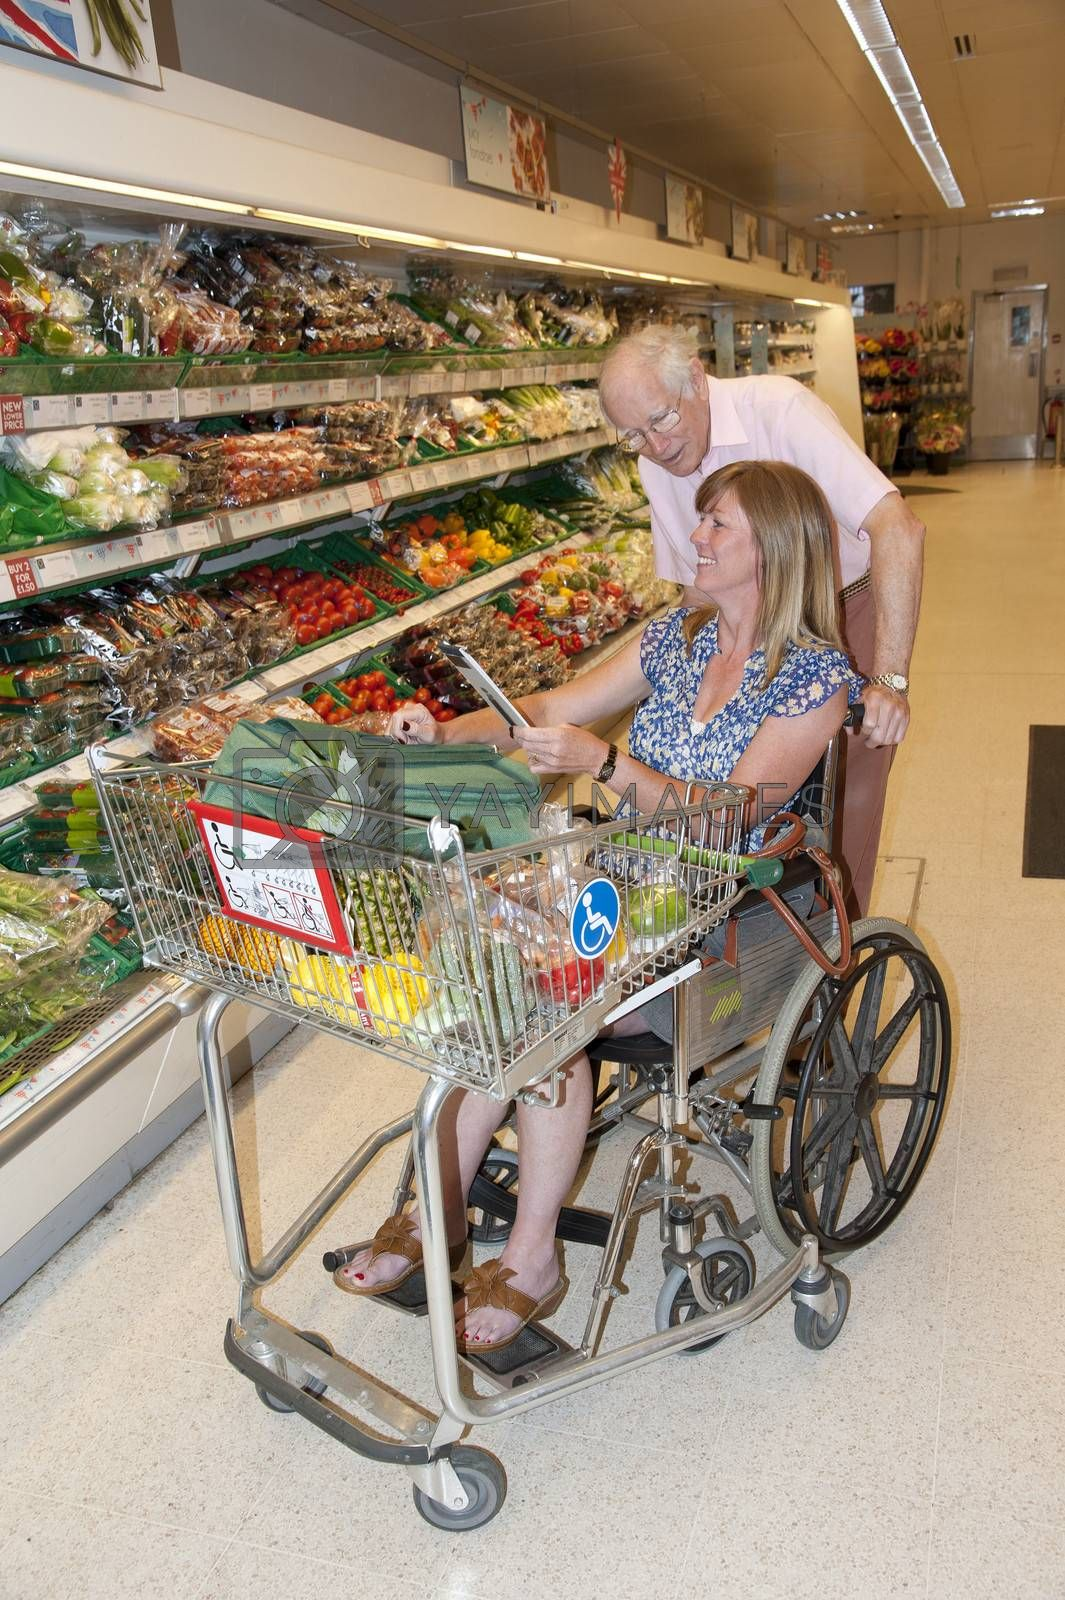 Care & woman in wheelchair shopping by Peter t